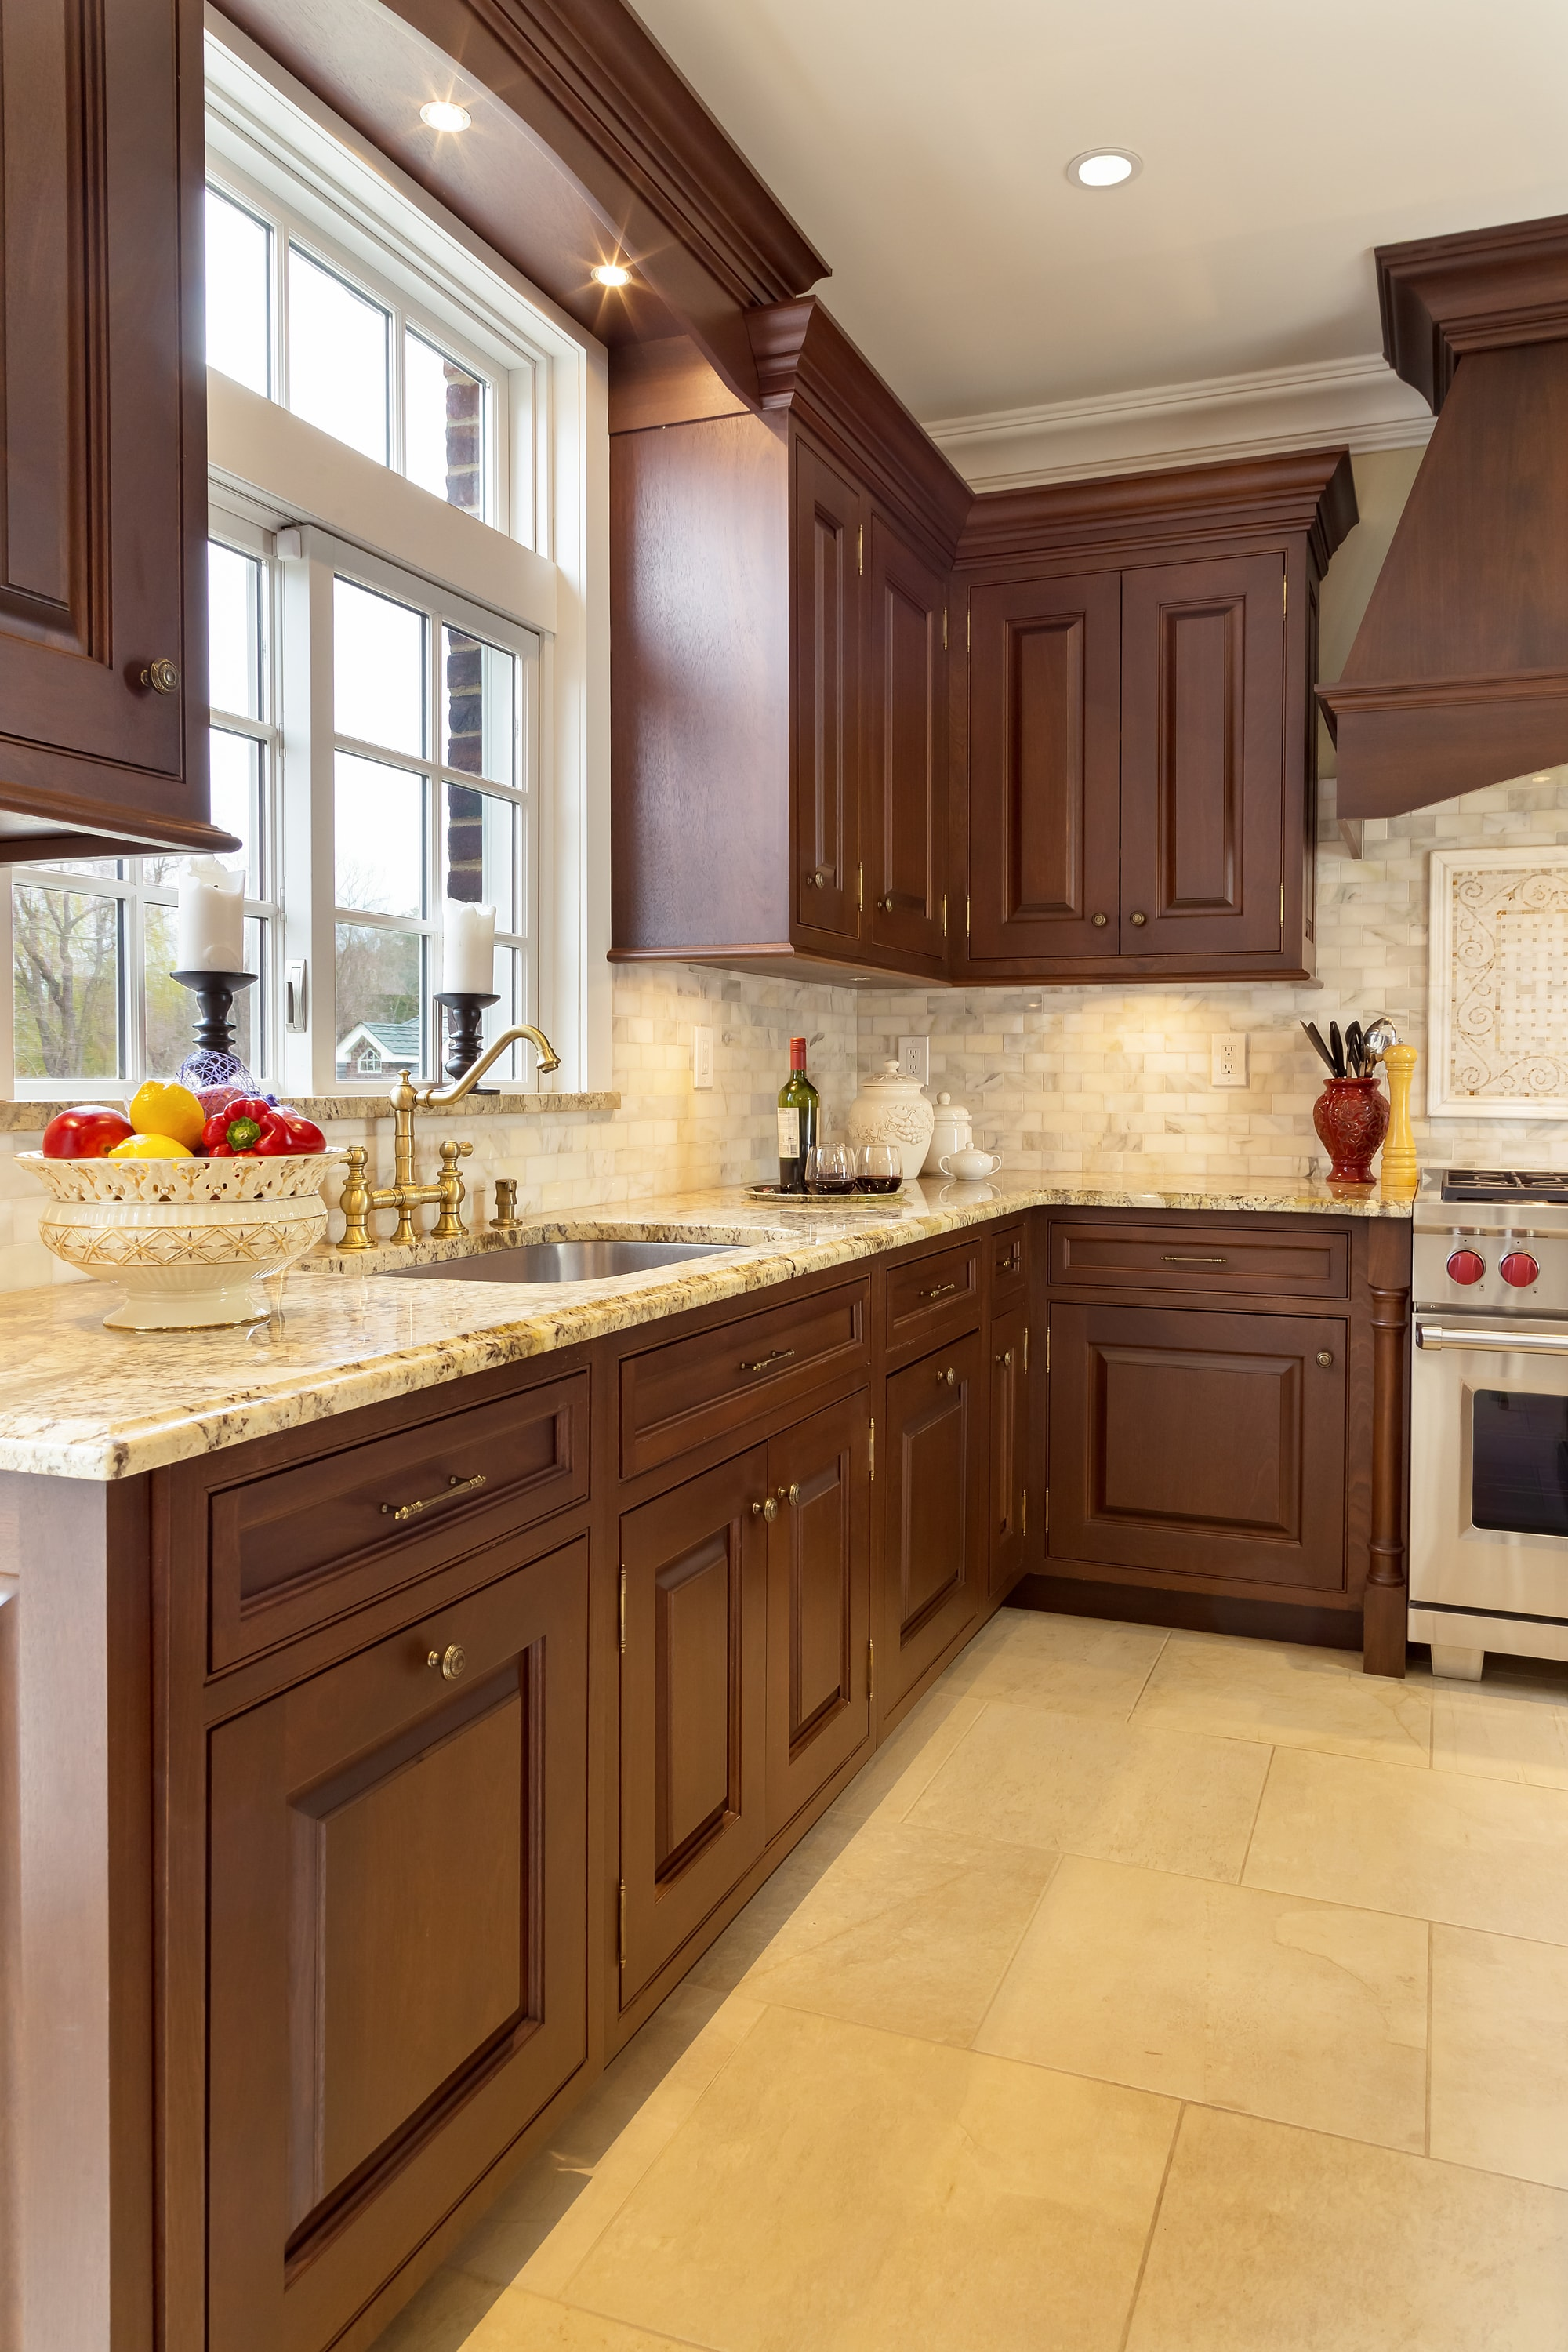 Traditional style kitchen with upper cabinet and wide french window